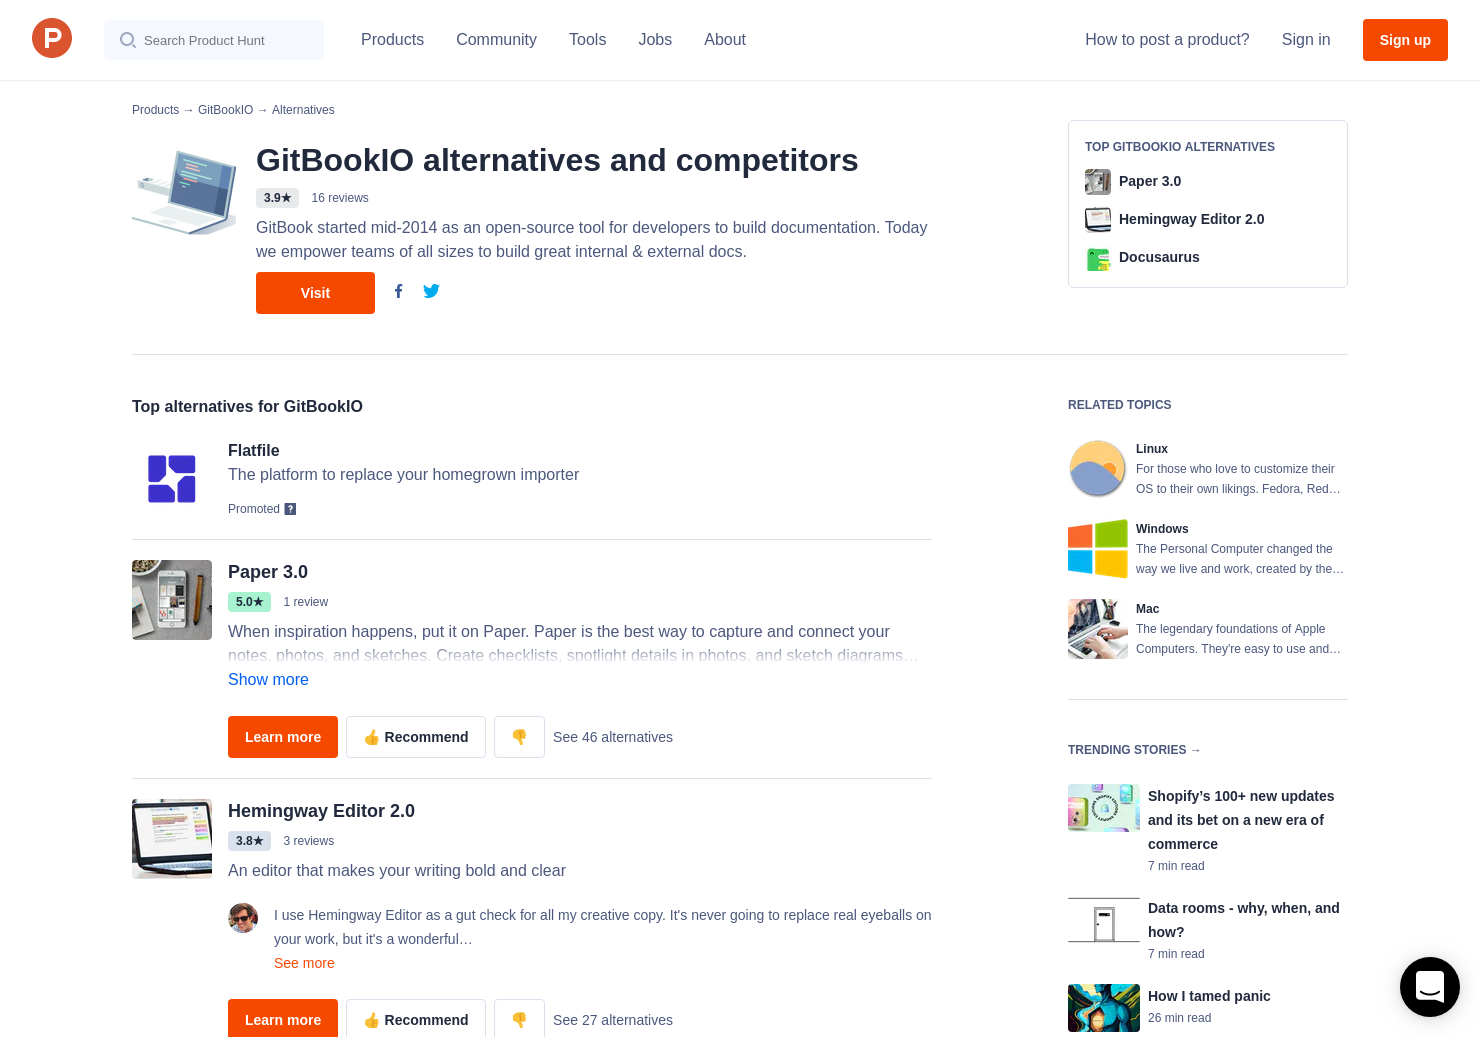 10 Alternatives to GitBook for Linux, Windows, Mac | Product Hunt